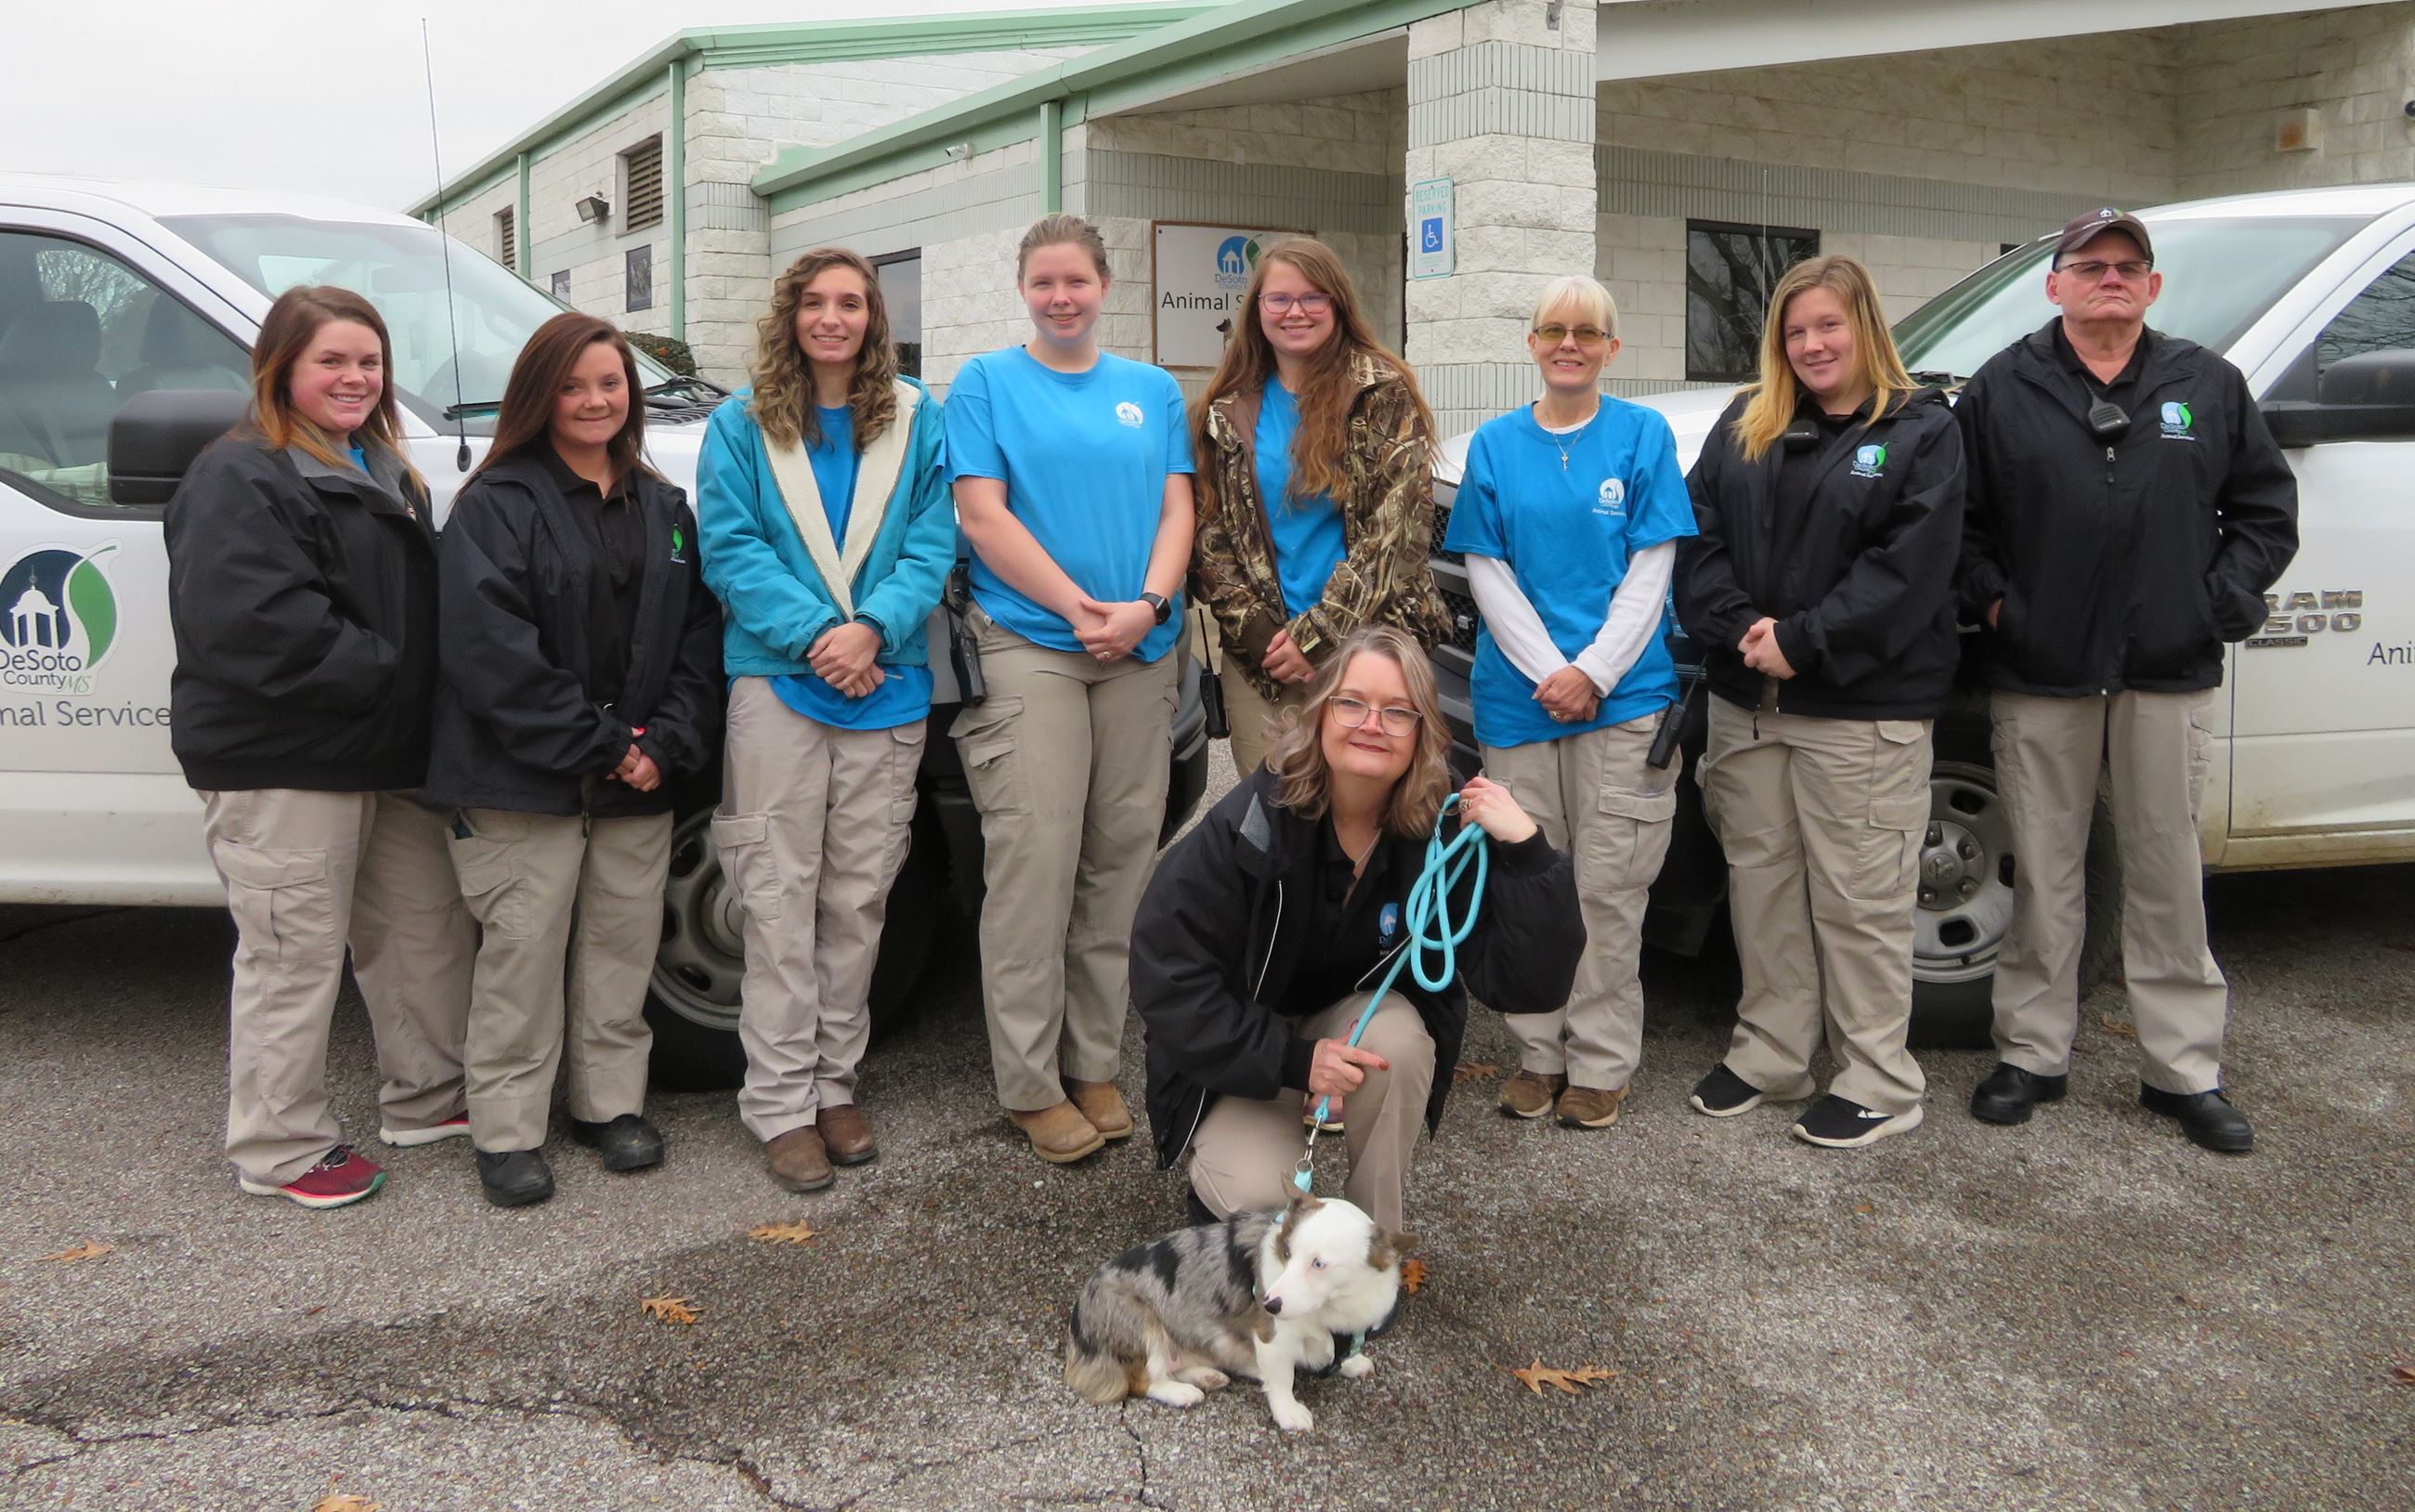 ANIMAL SERVICES STAFF PICTURE